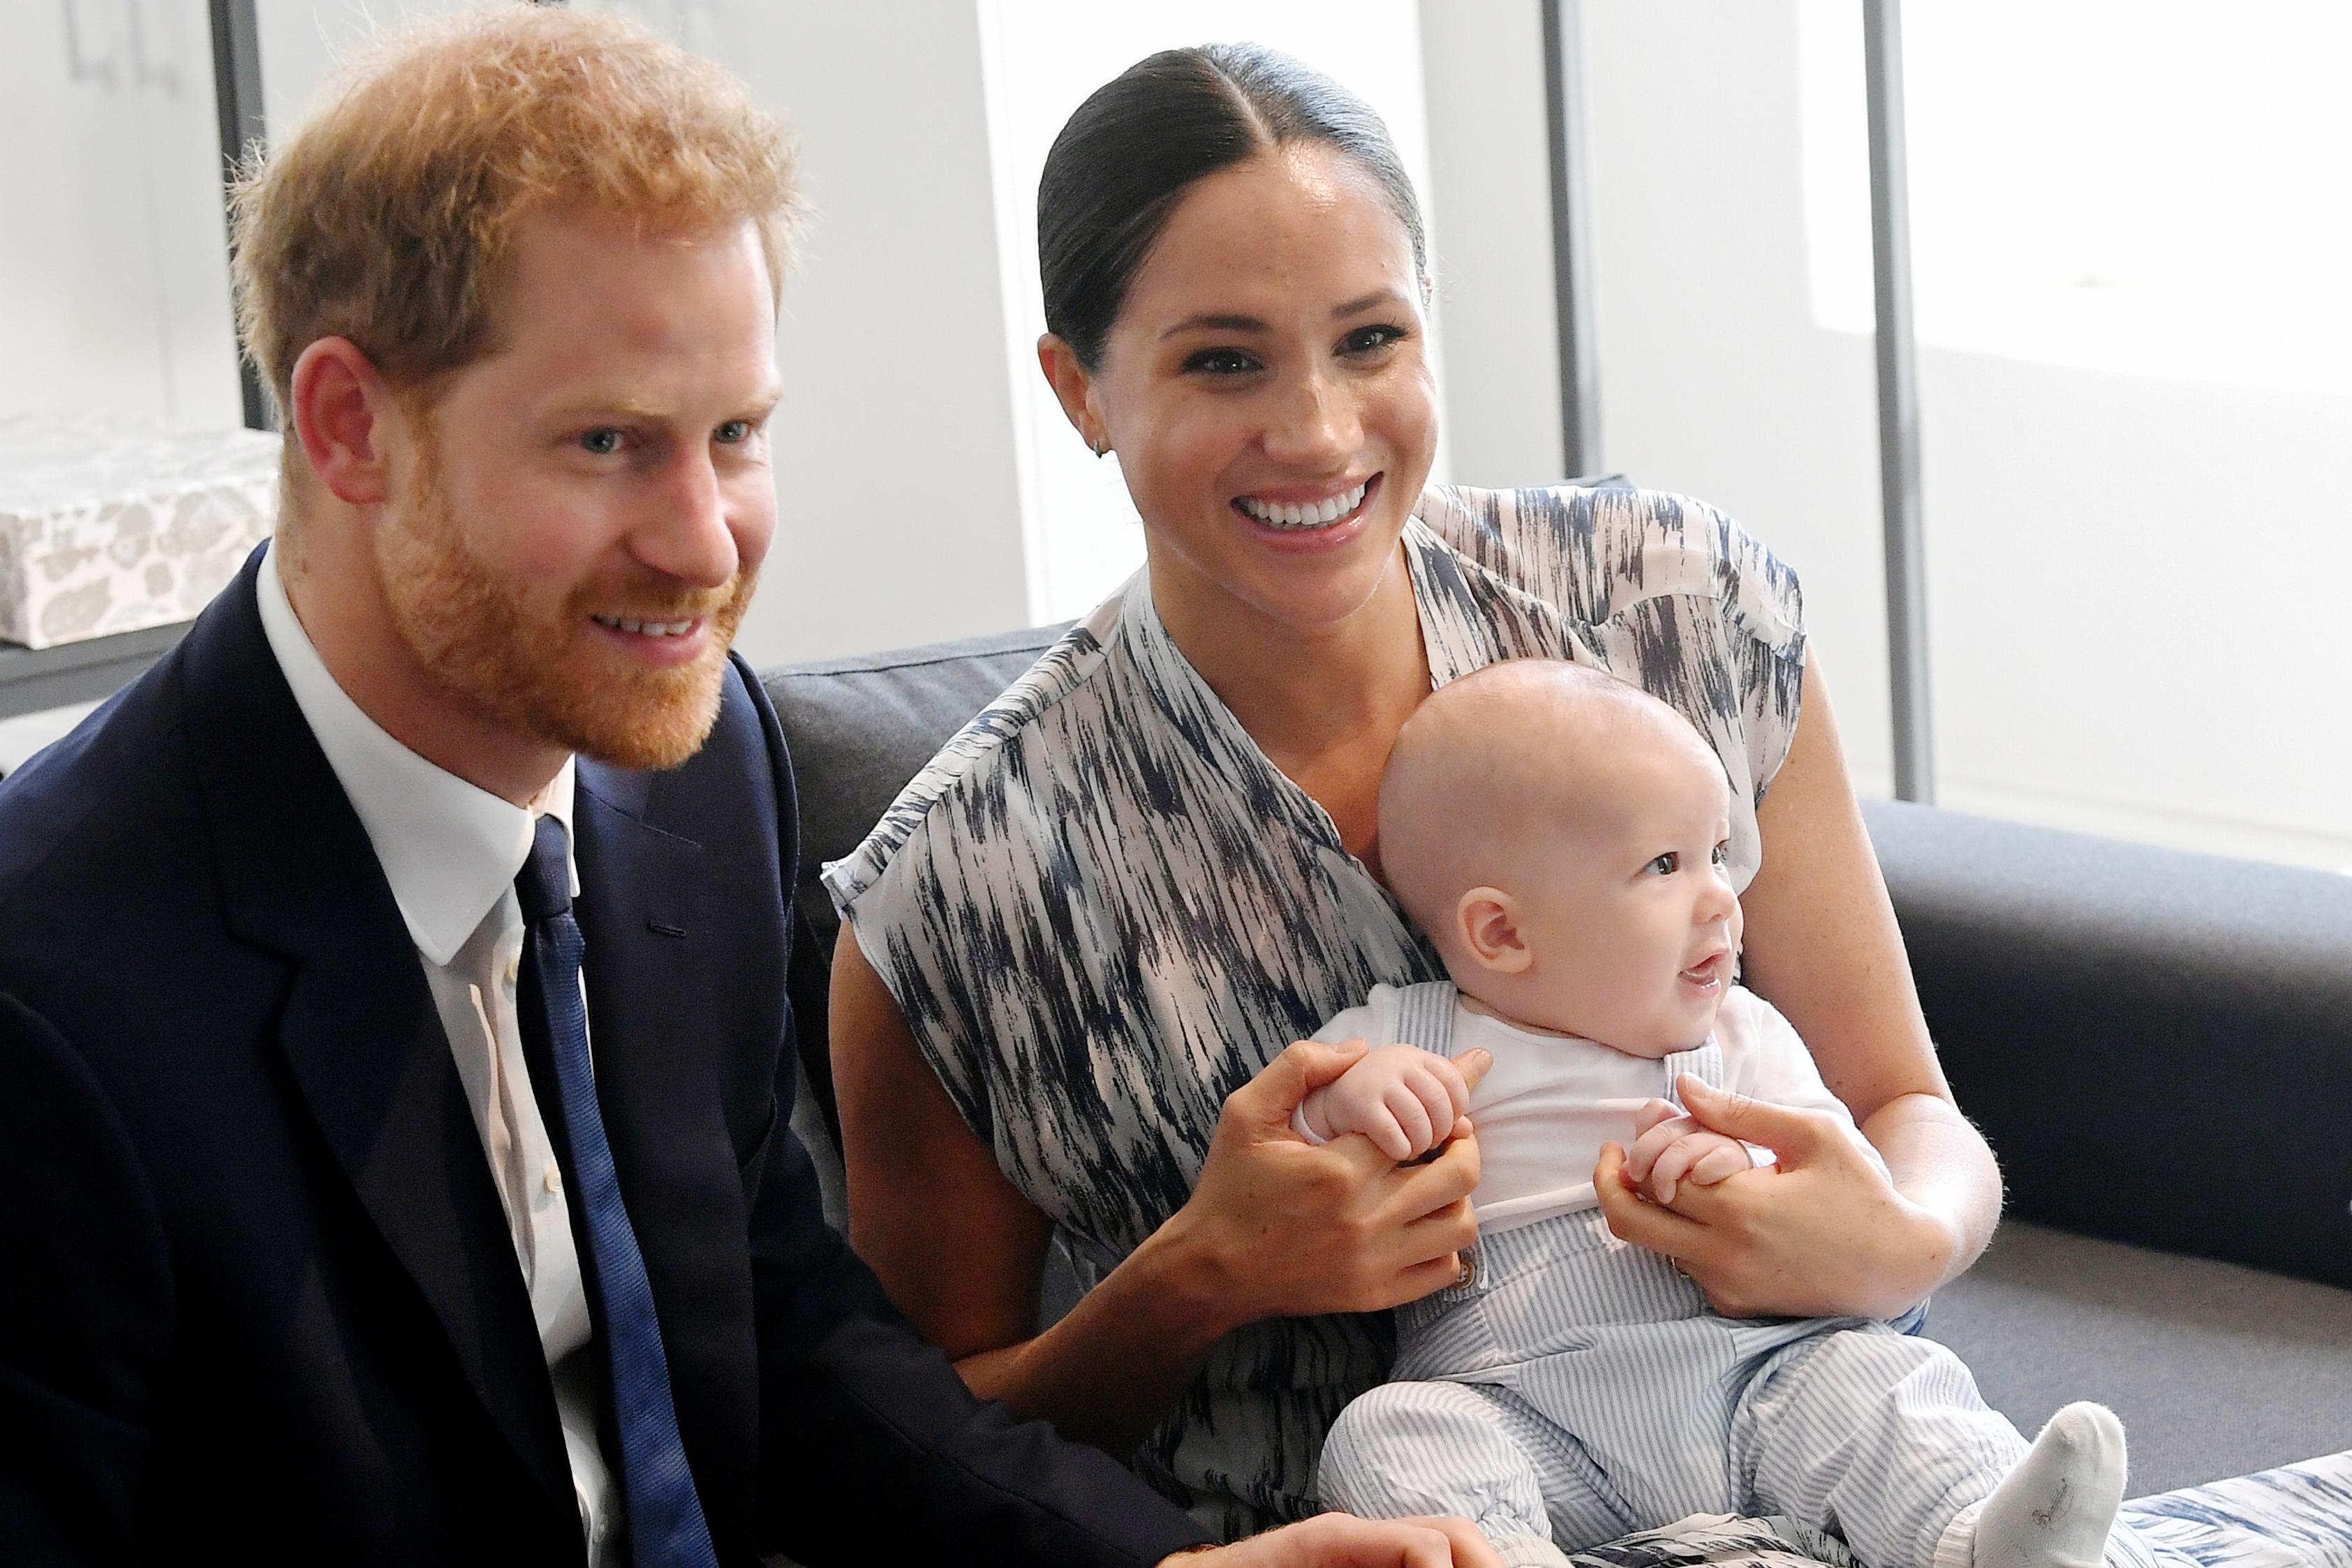 Prince Harry and Meghan Markle 'focusing on their family' as they end Sussex Royal Instagram